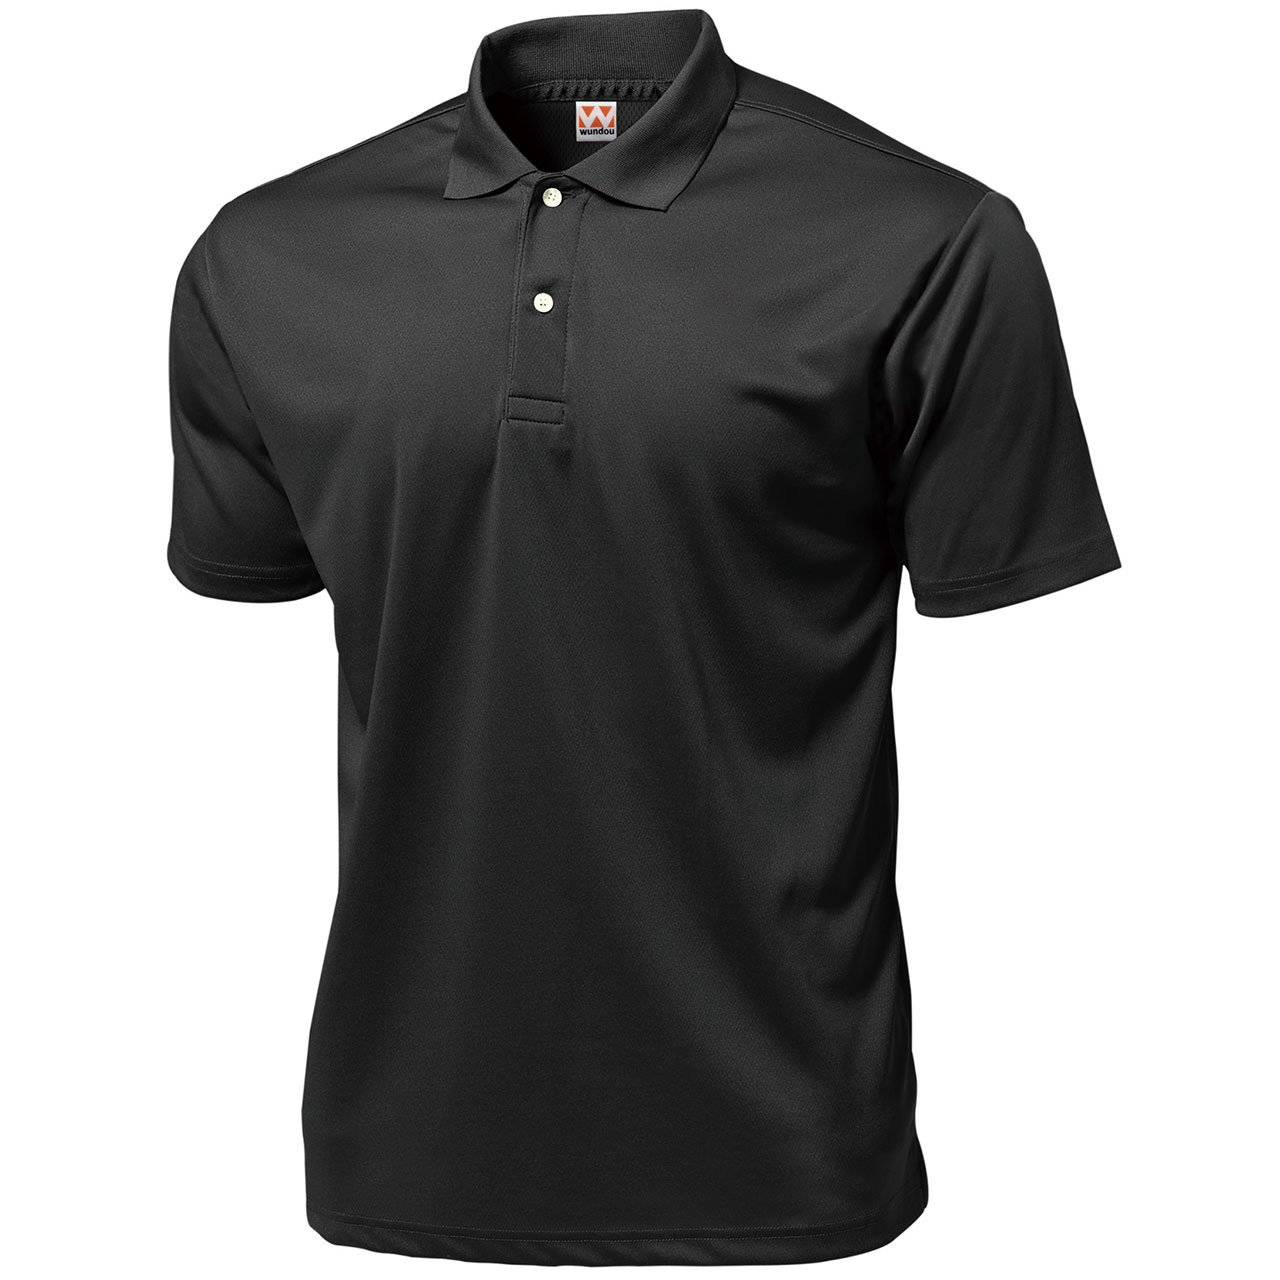 Wundou Boy's Sports Dry Light Polo-Shirts P335?140CM(55'')?Black